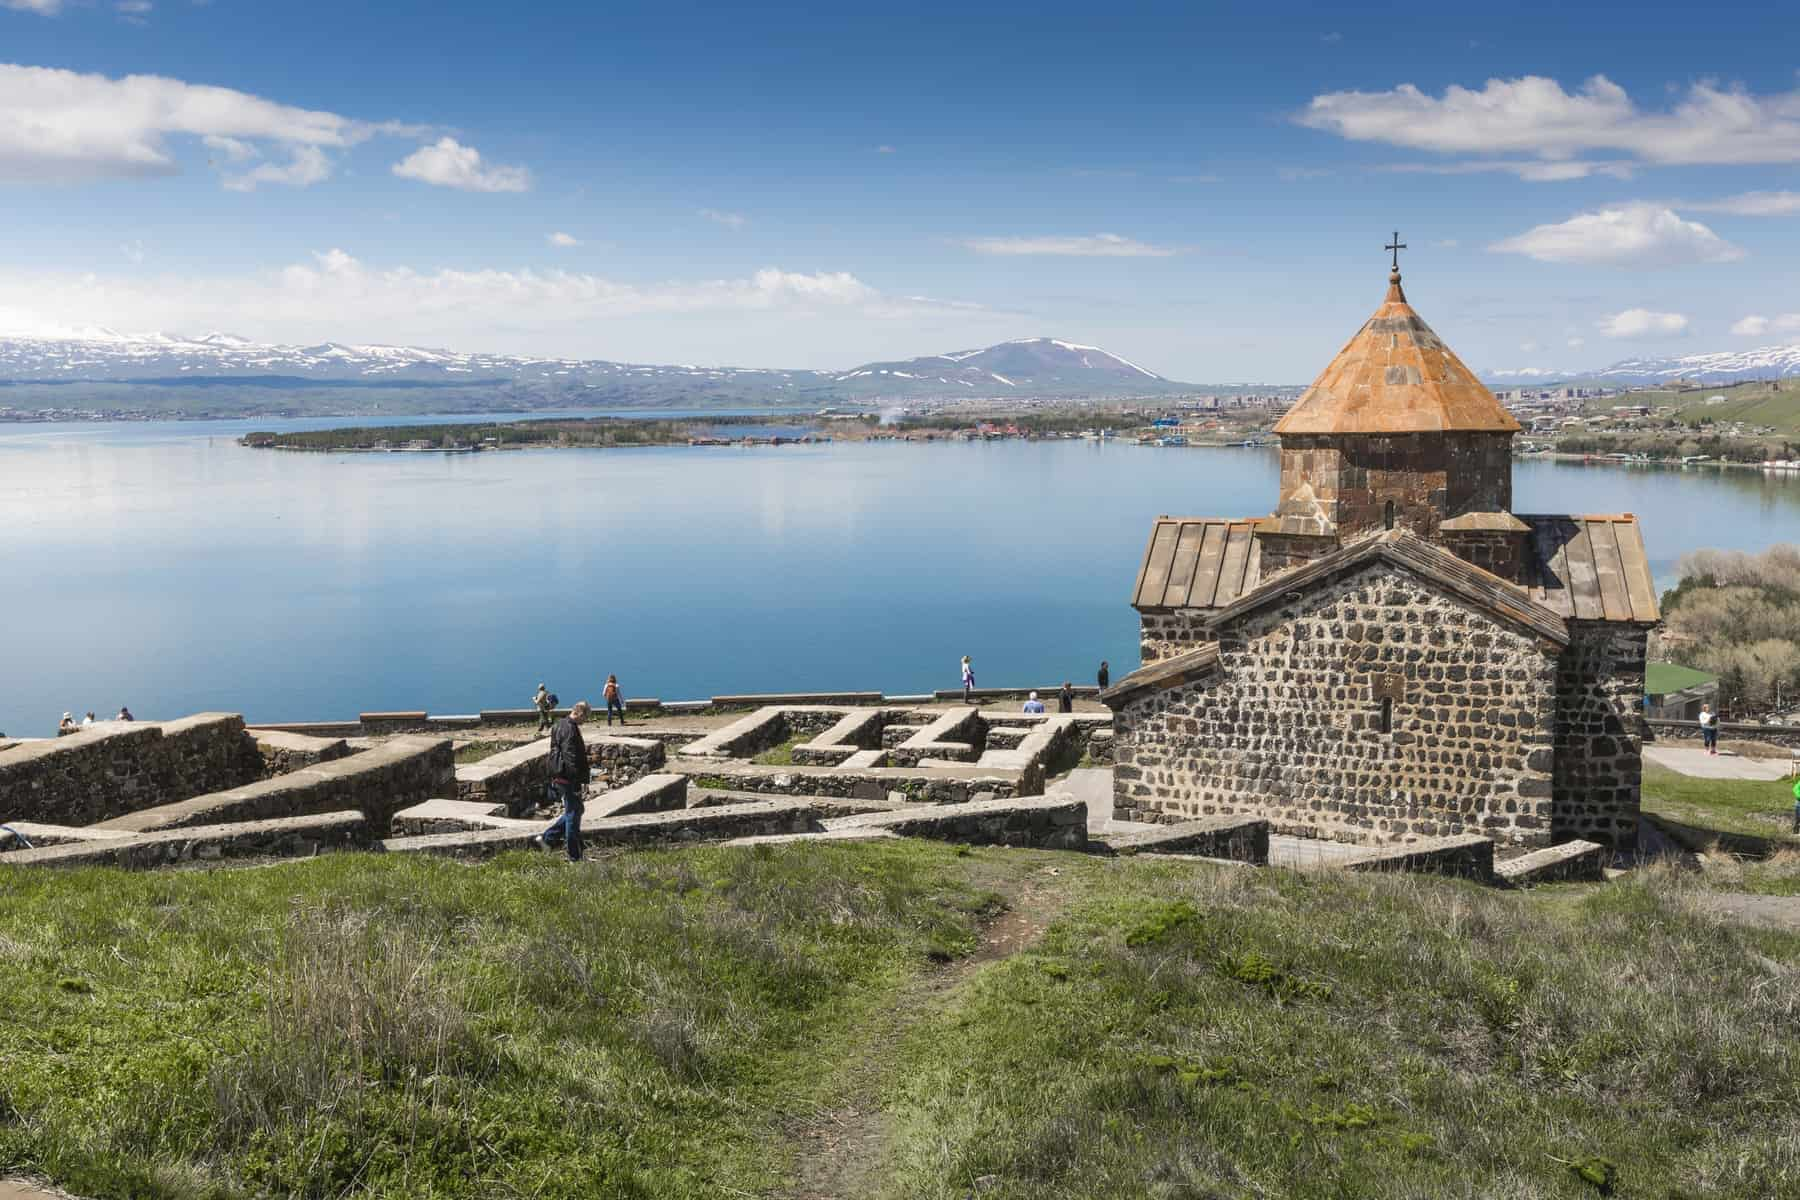 The 9th century Armenian monastery of Sevanavank at lake Sevan